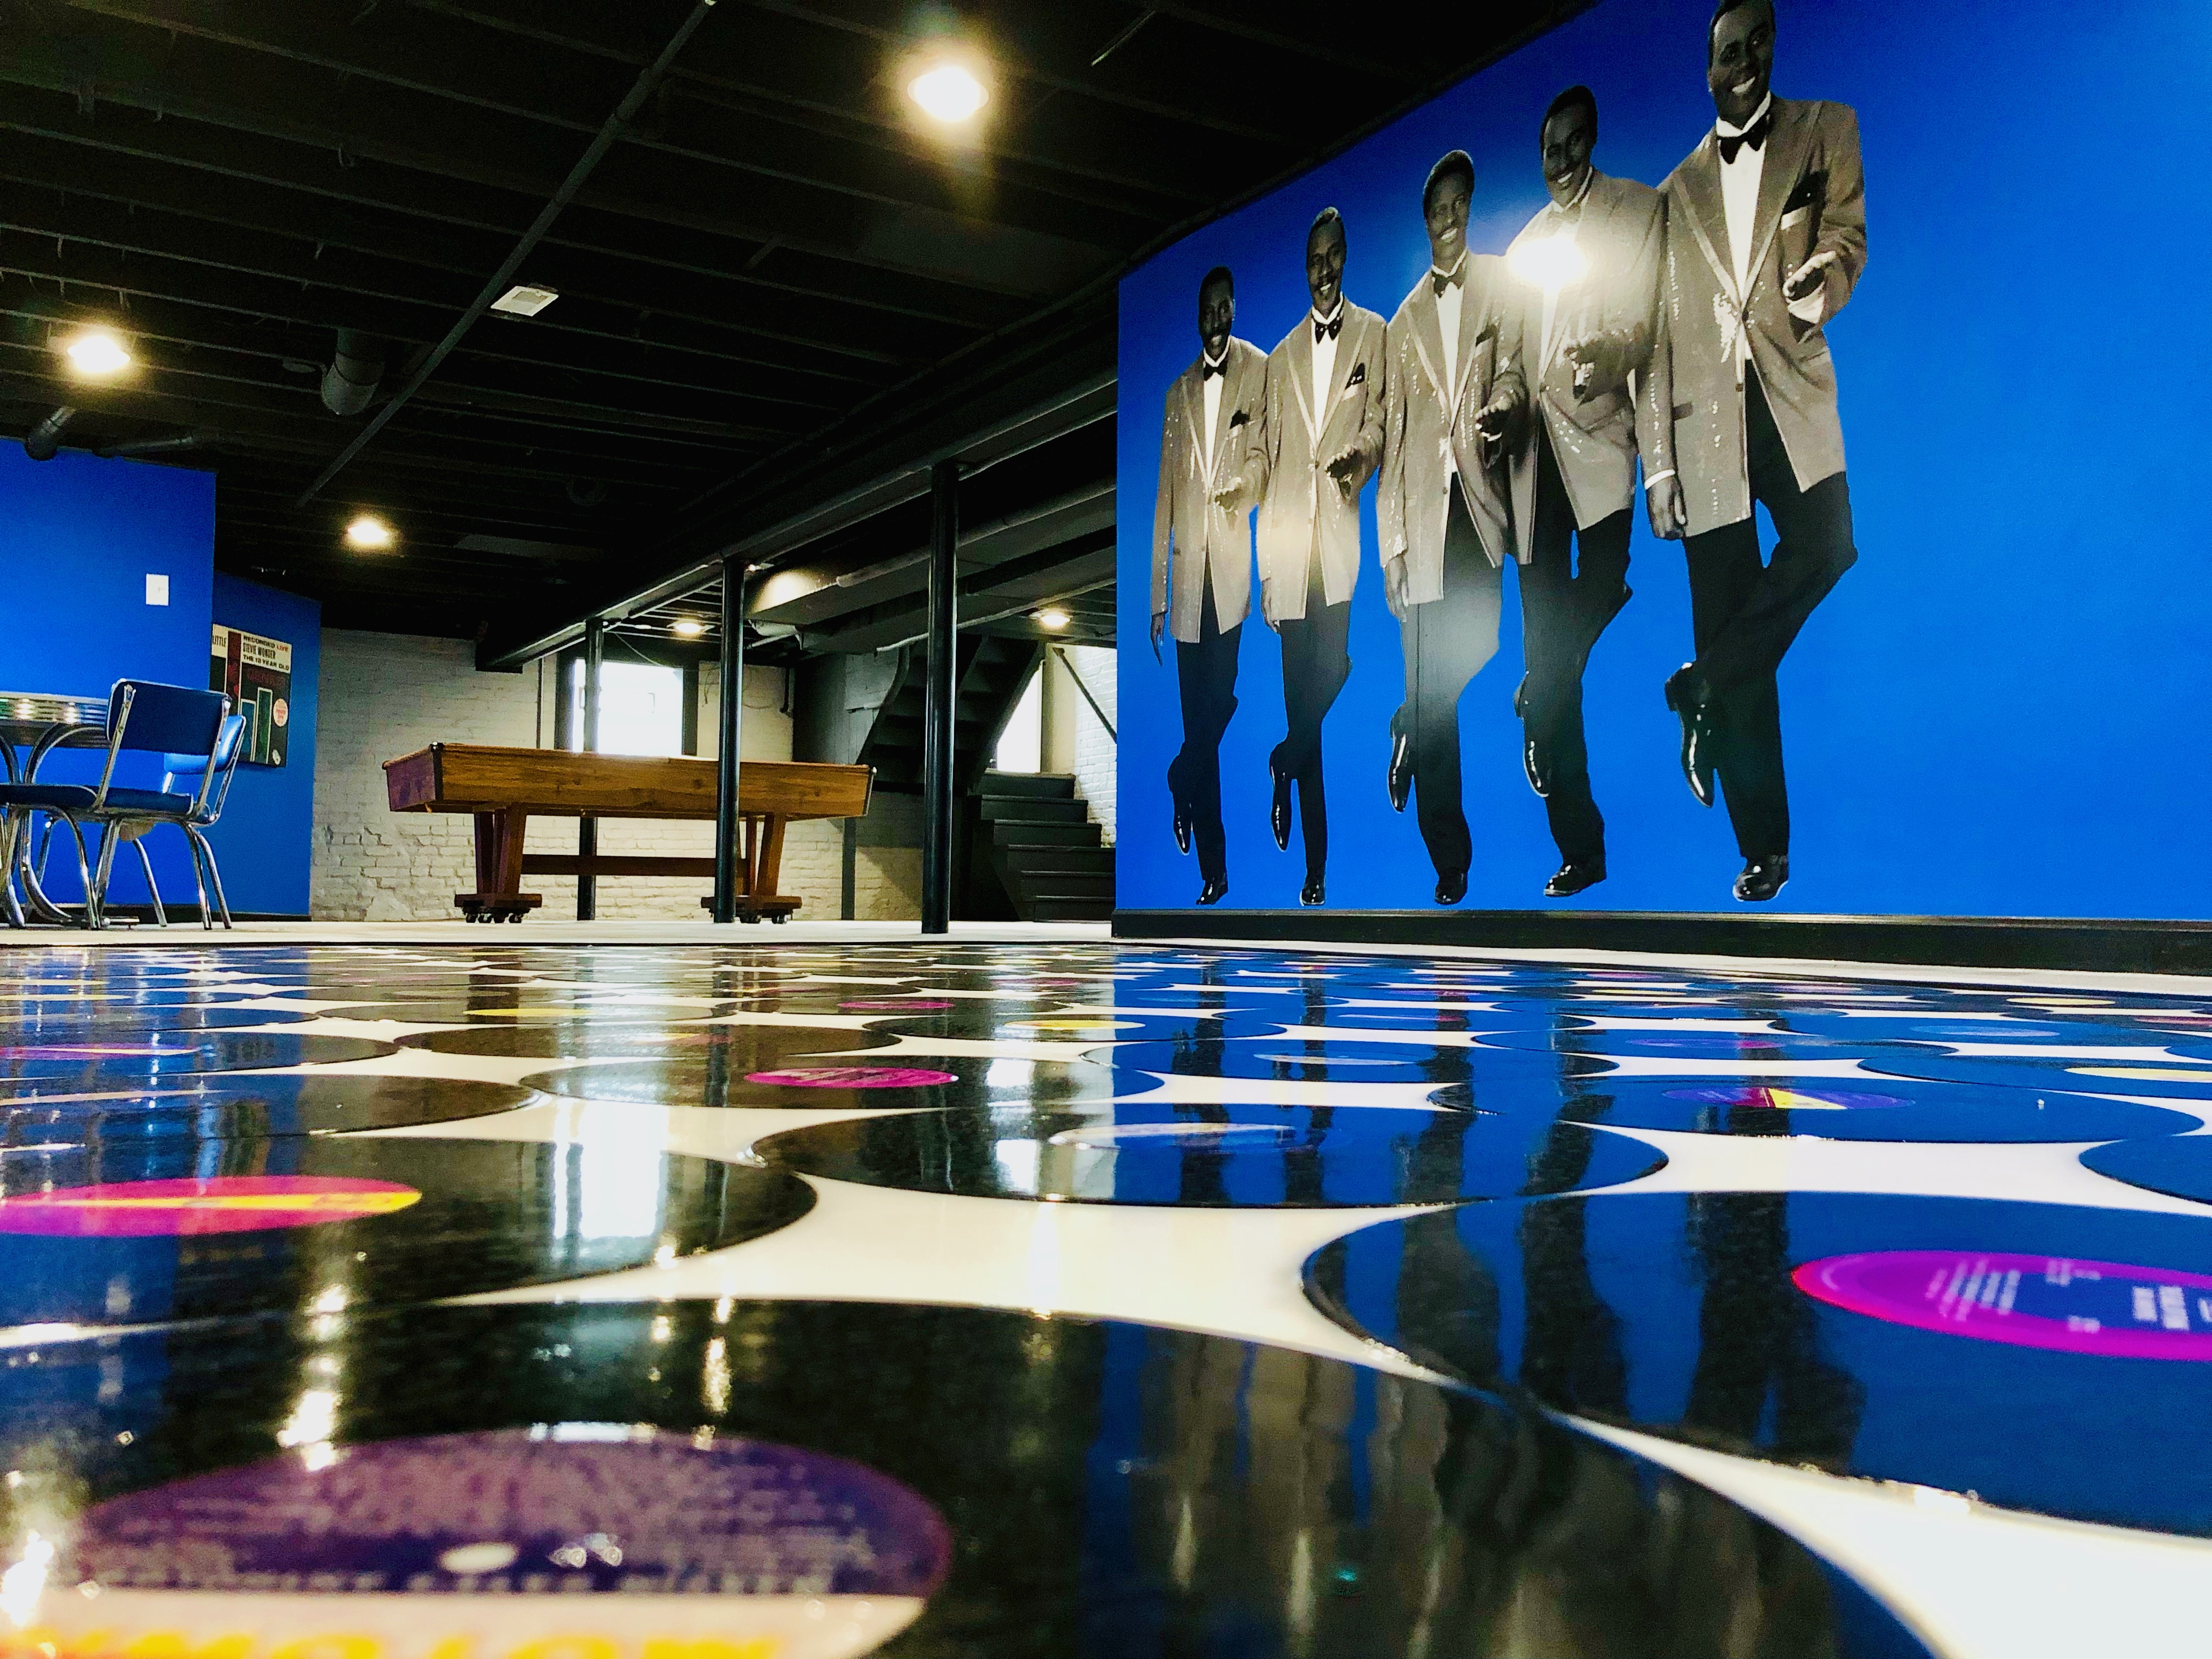 A vinyl-covered floor and a blue wall painted with five tuxedo-wearing dancers.